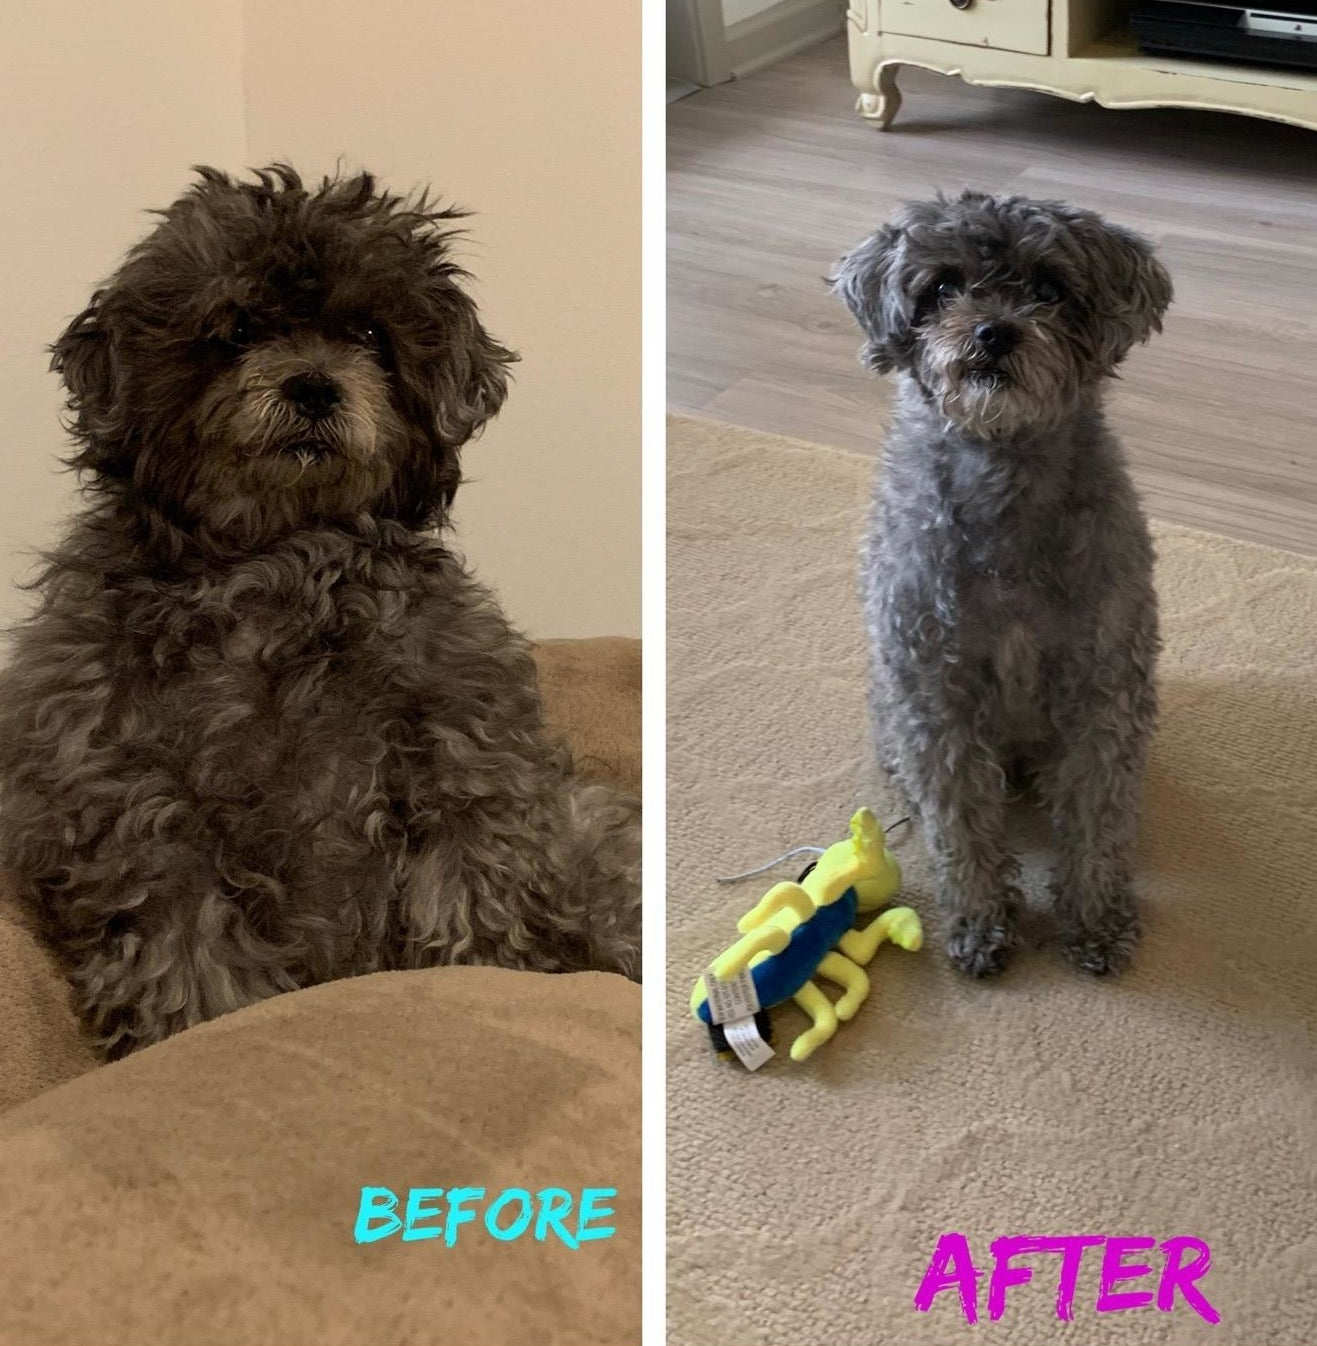 A dog before and after being sheared